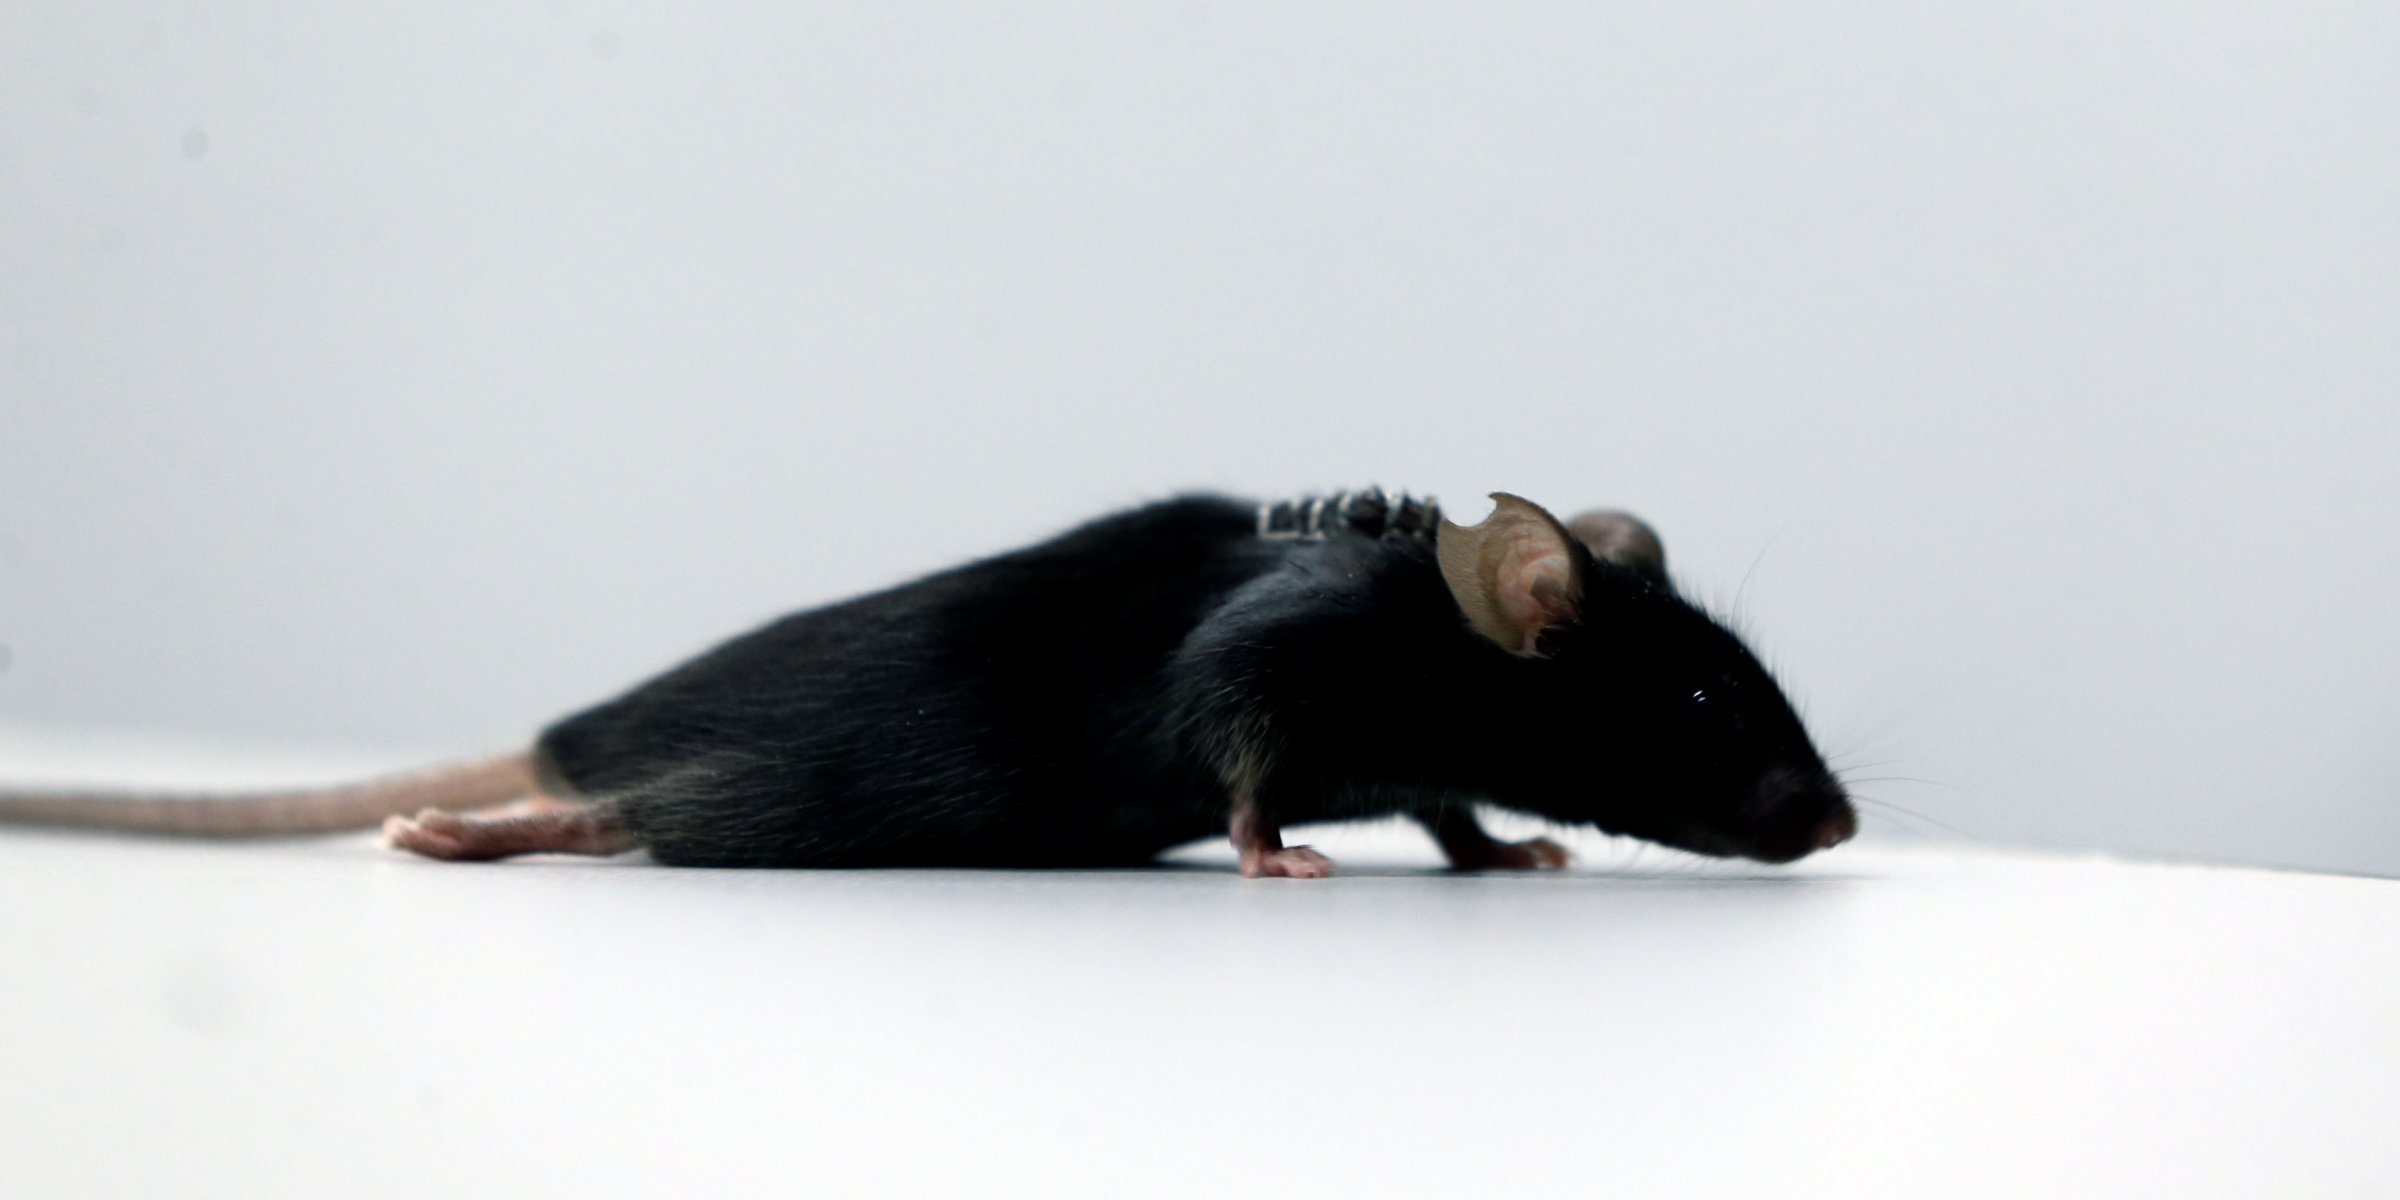 Mice paralyzed with spine injury walk again after new treatment | Daily Sabah - Daily Sabah